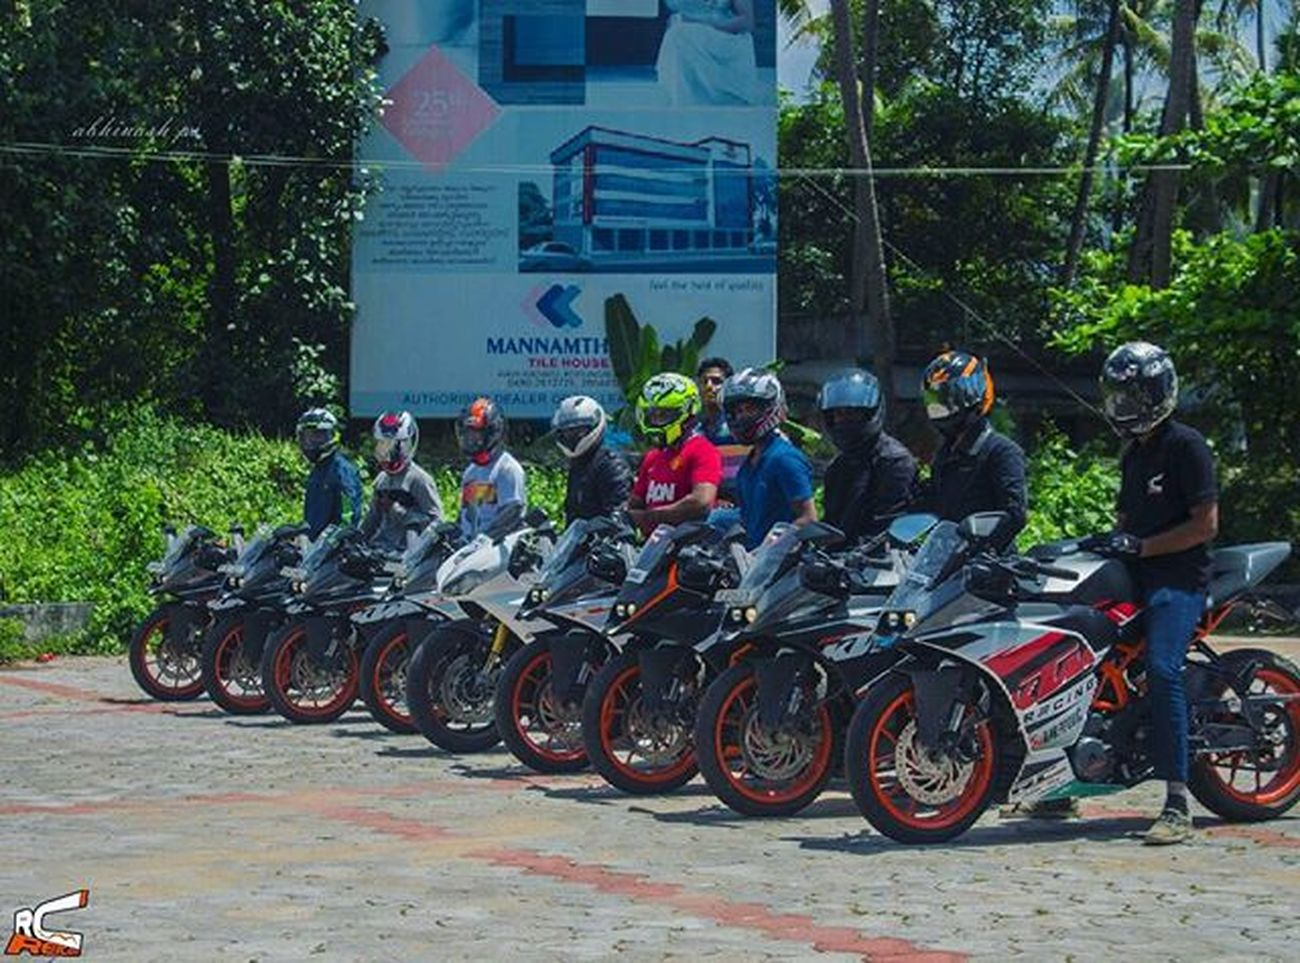 RcReiTers😍😘😎 Ktmworld Ktmclub KTMRacing Ktm Baby Bigboystoy Ktmrc390 Ktmrc200 DUKE  Street Race Travel Bikeswithoutlimits Bikestagram SportBikeLife Sportbikeaddicts 😍😙😘😉😊